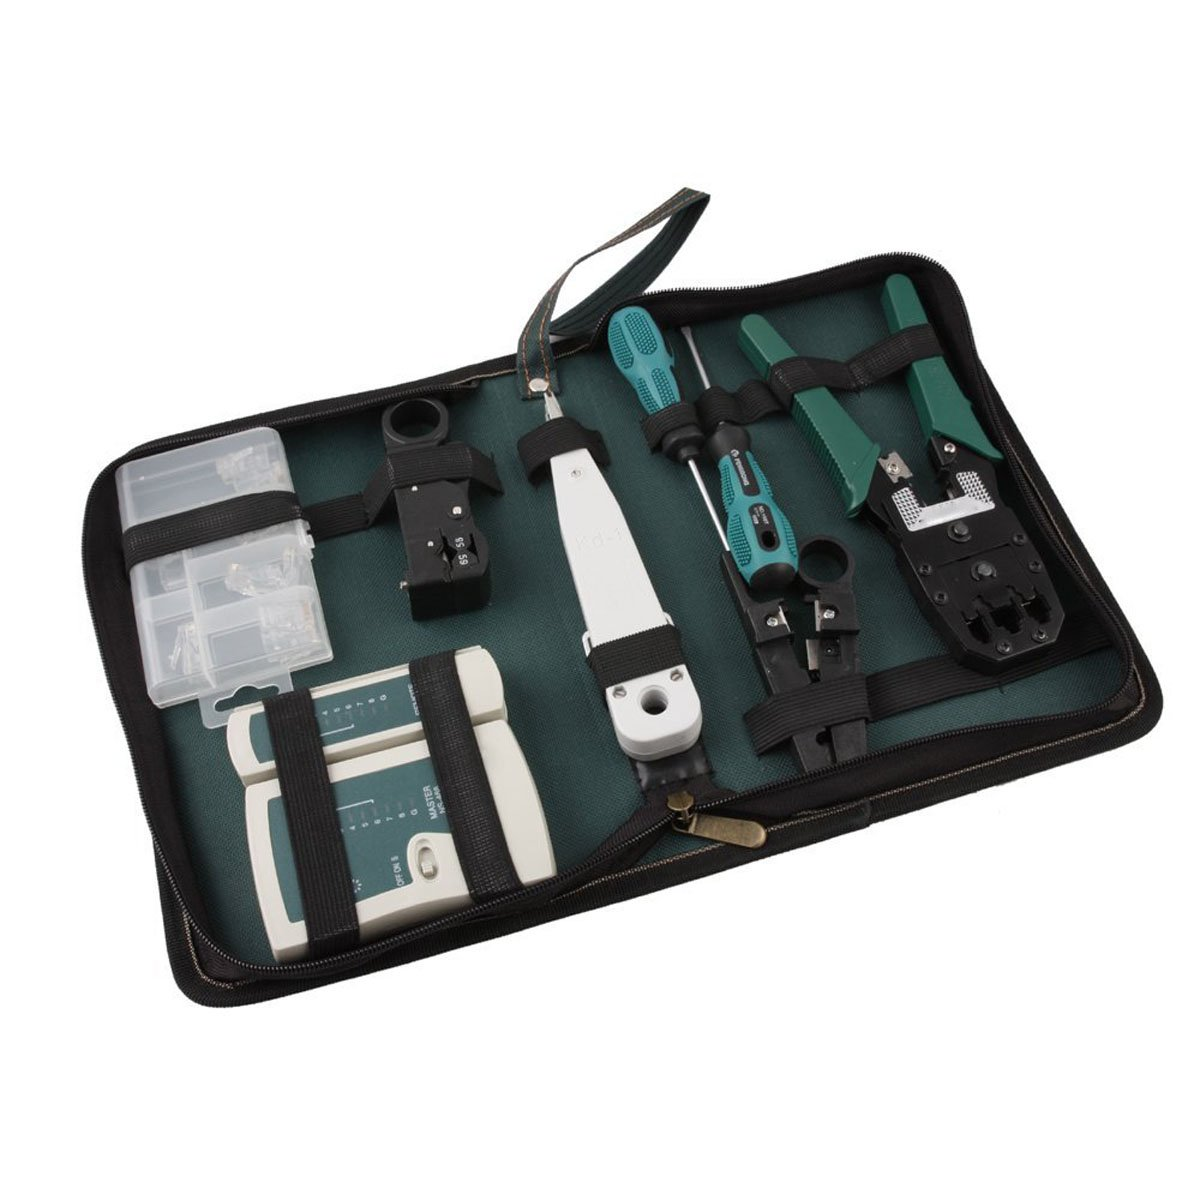 Foxnovo 8-in-1 Professional Network Computer Maintenance Repair Tools Set